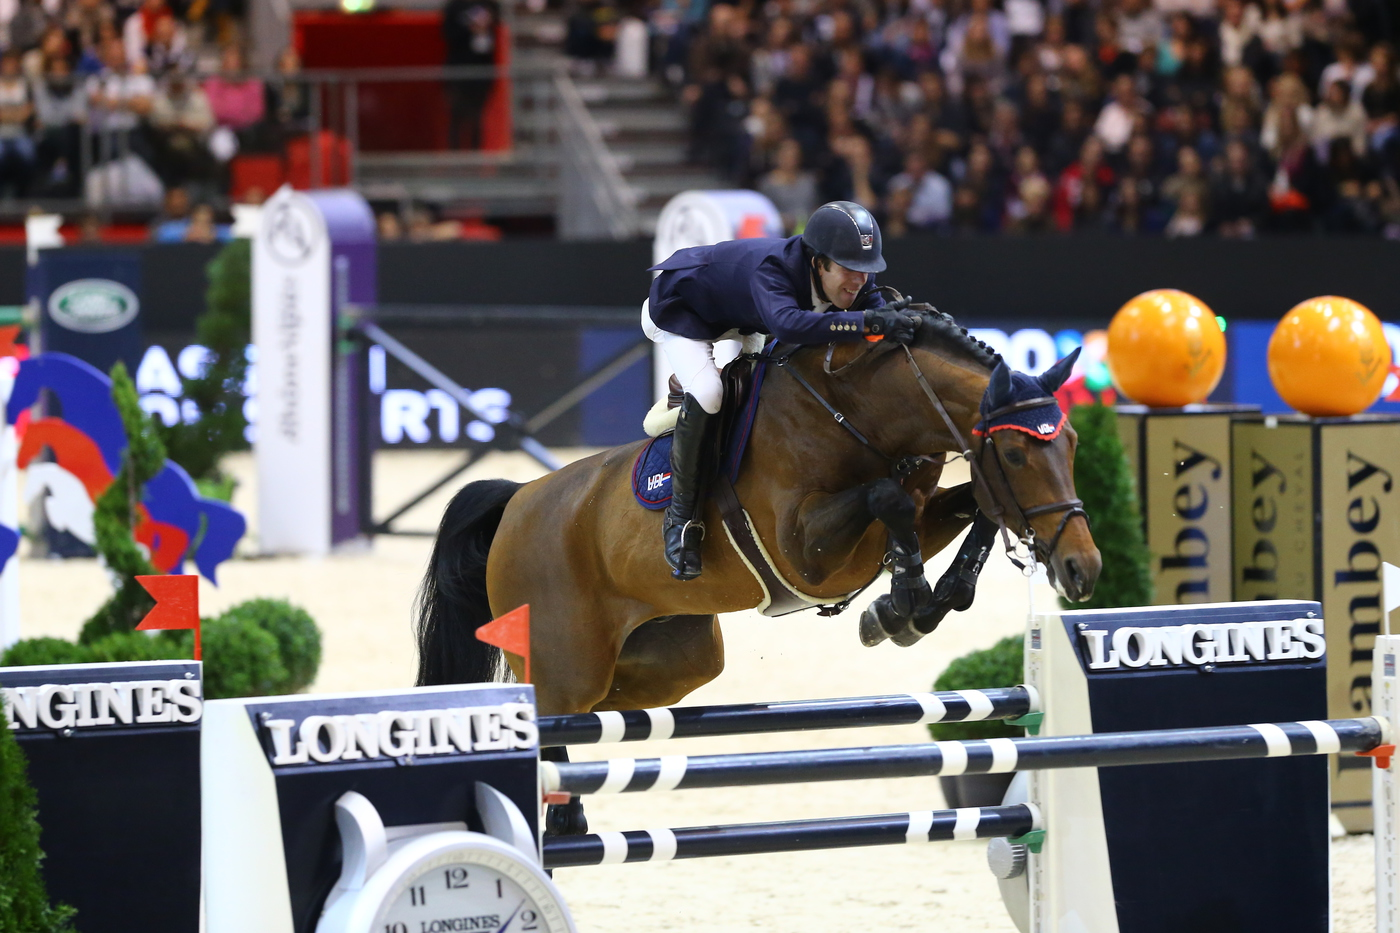 Longines Show Jumping Event: Longines  – Official Timekeeper of Equita'Lyon 2